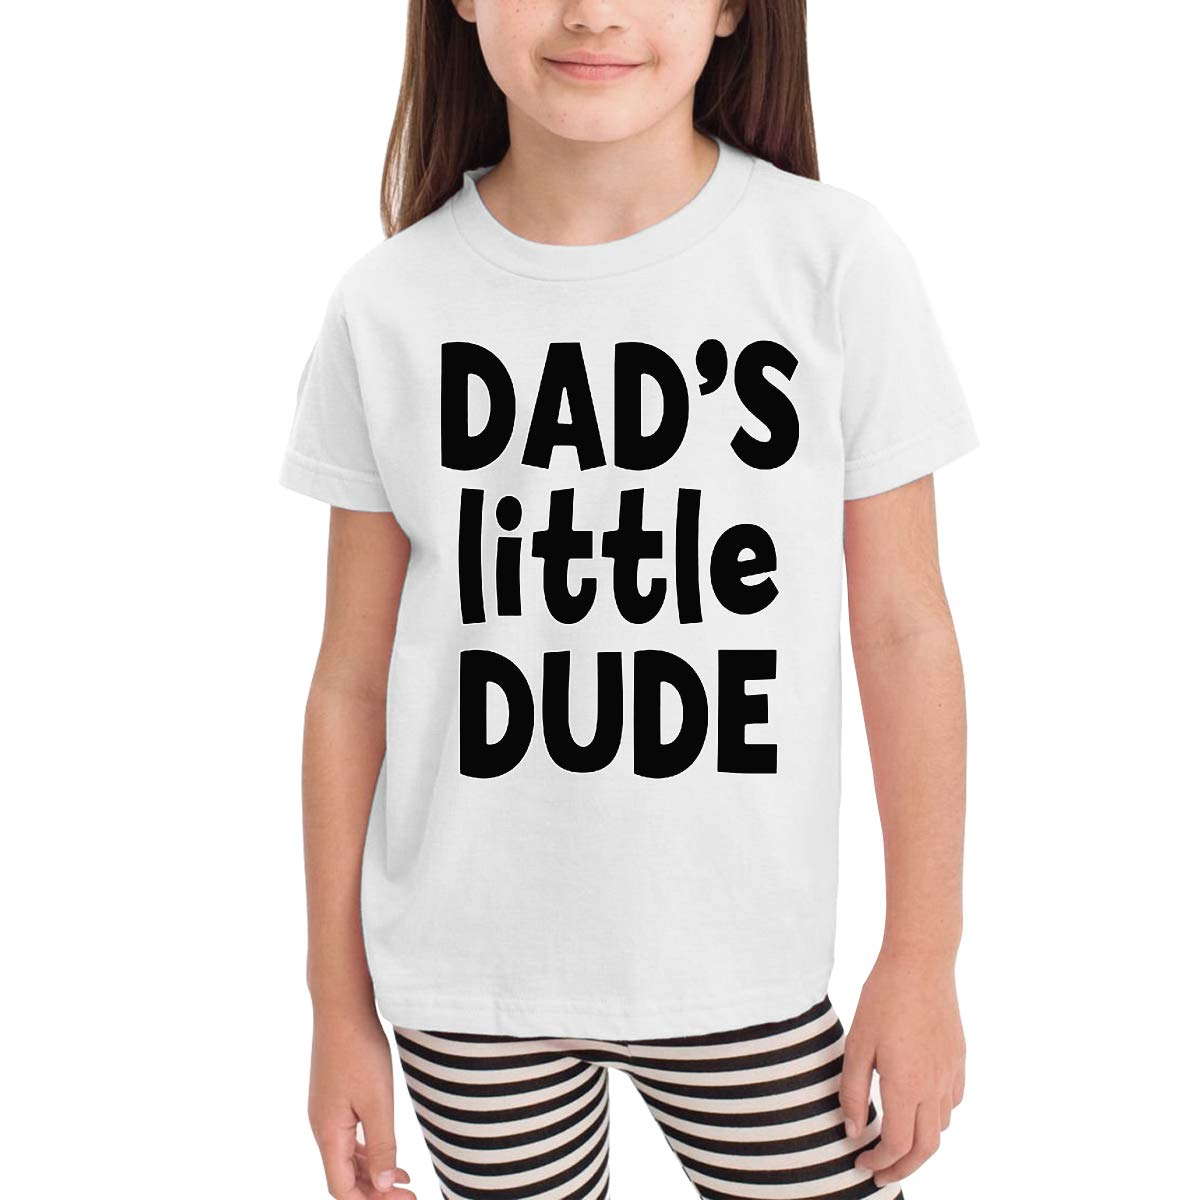 Dads Little Dude Toddler Kids Girls Boys Adorable T-Shirt Cotton Short Sleeve Graphic Tee 2-6 Years